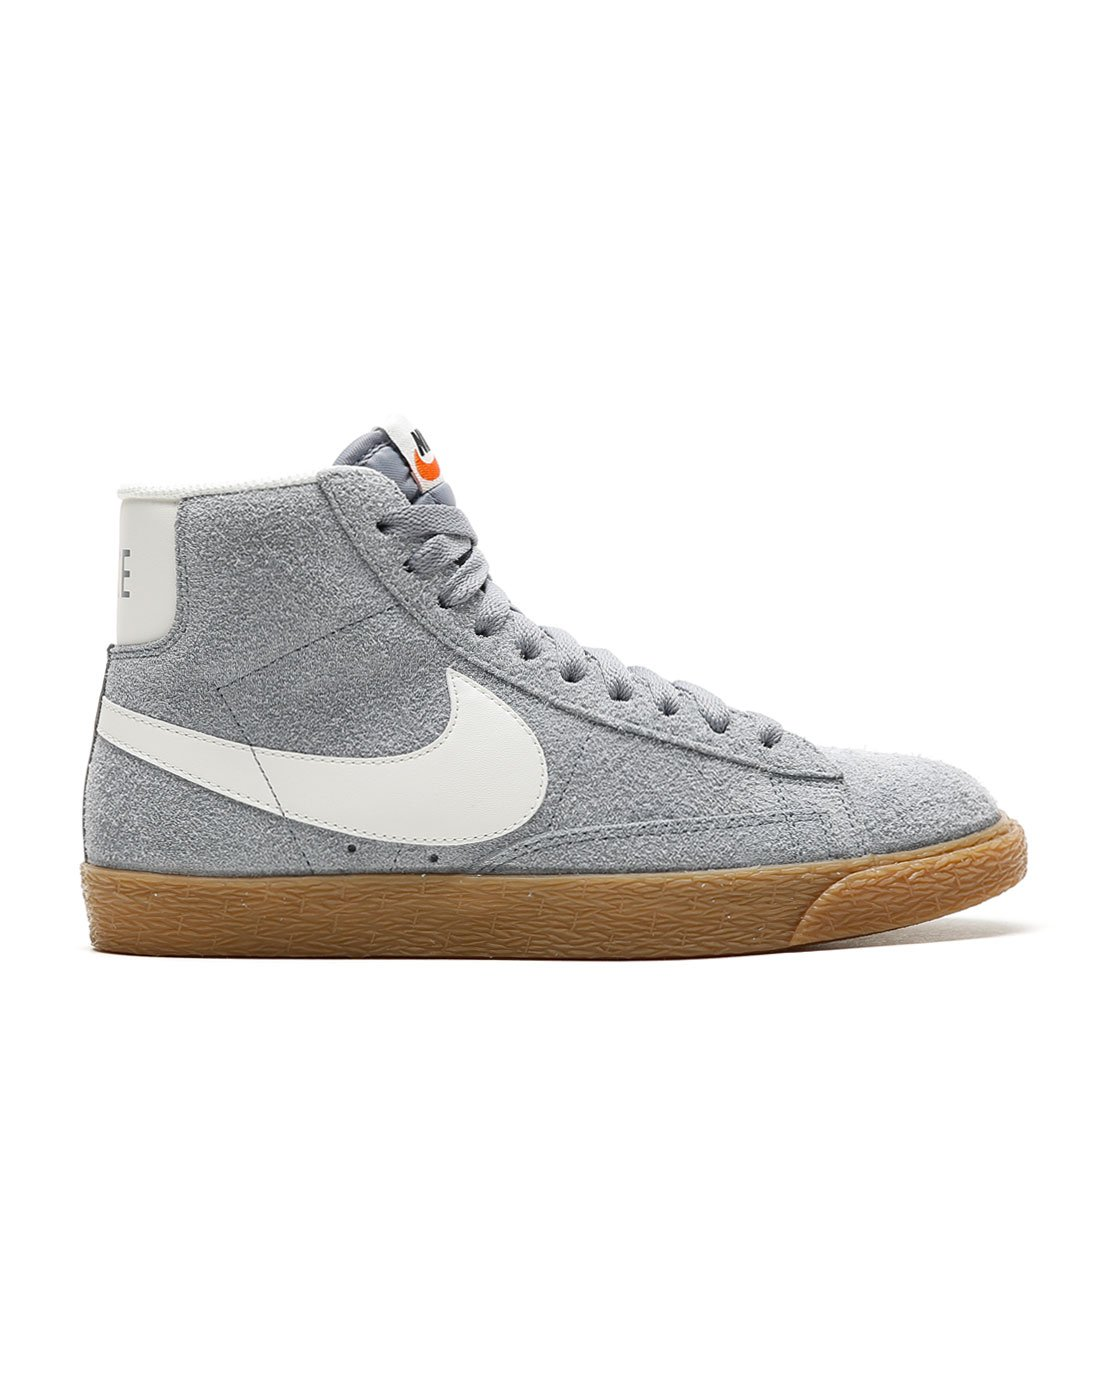 Nike Women's Blazer Mid Suede Vintage Stealth/Ivory 518171-016 (Size: 6)